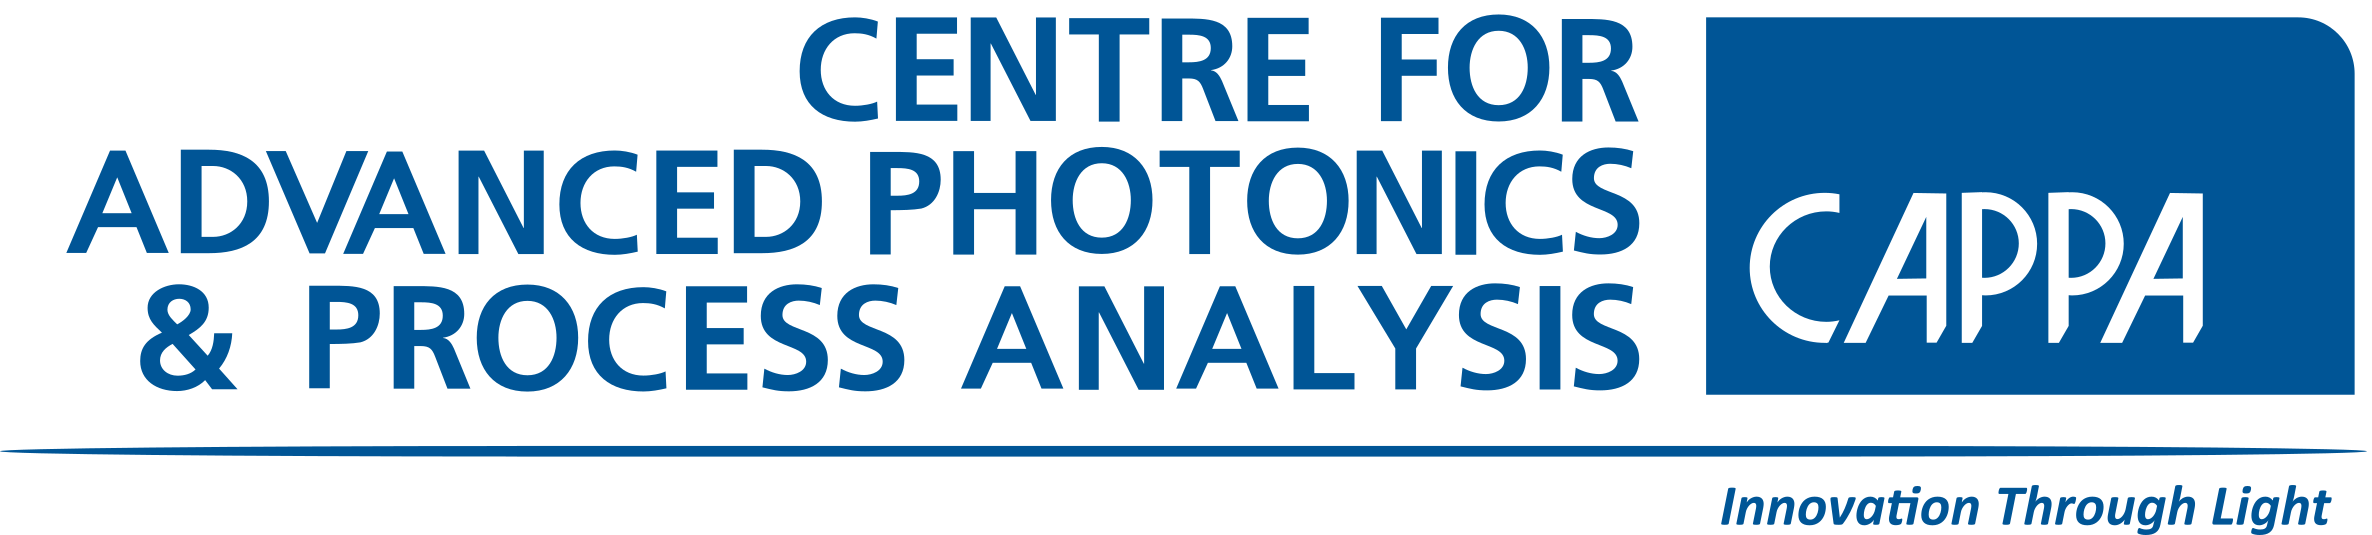 Centre For Advanced Photonics and Process Analysis